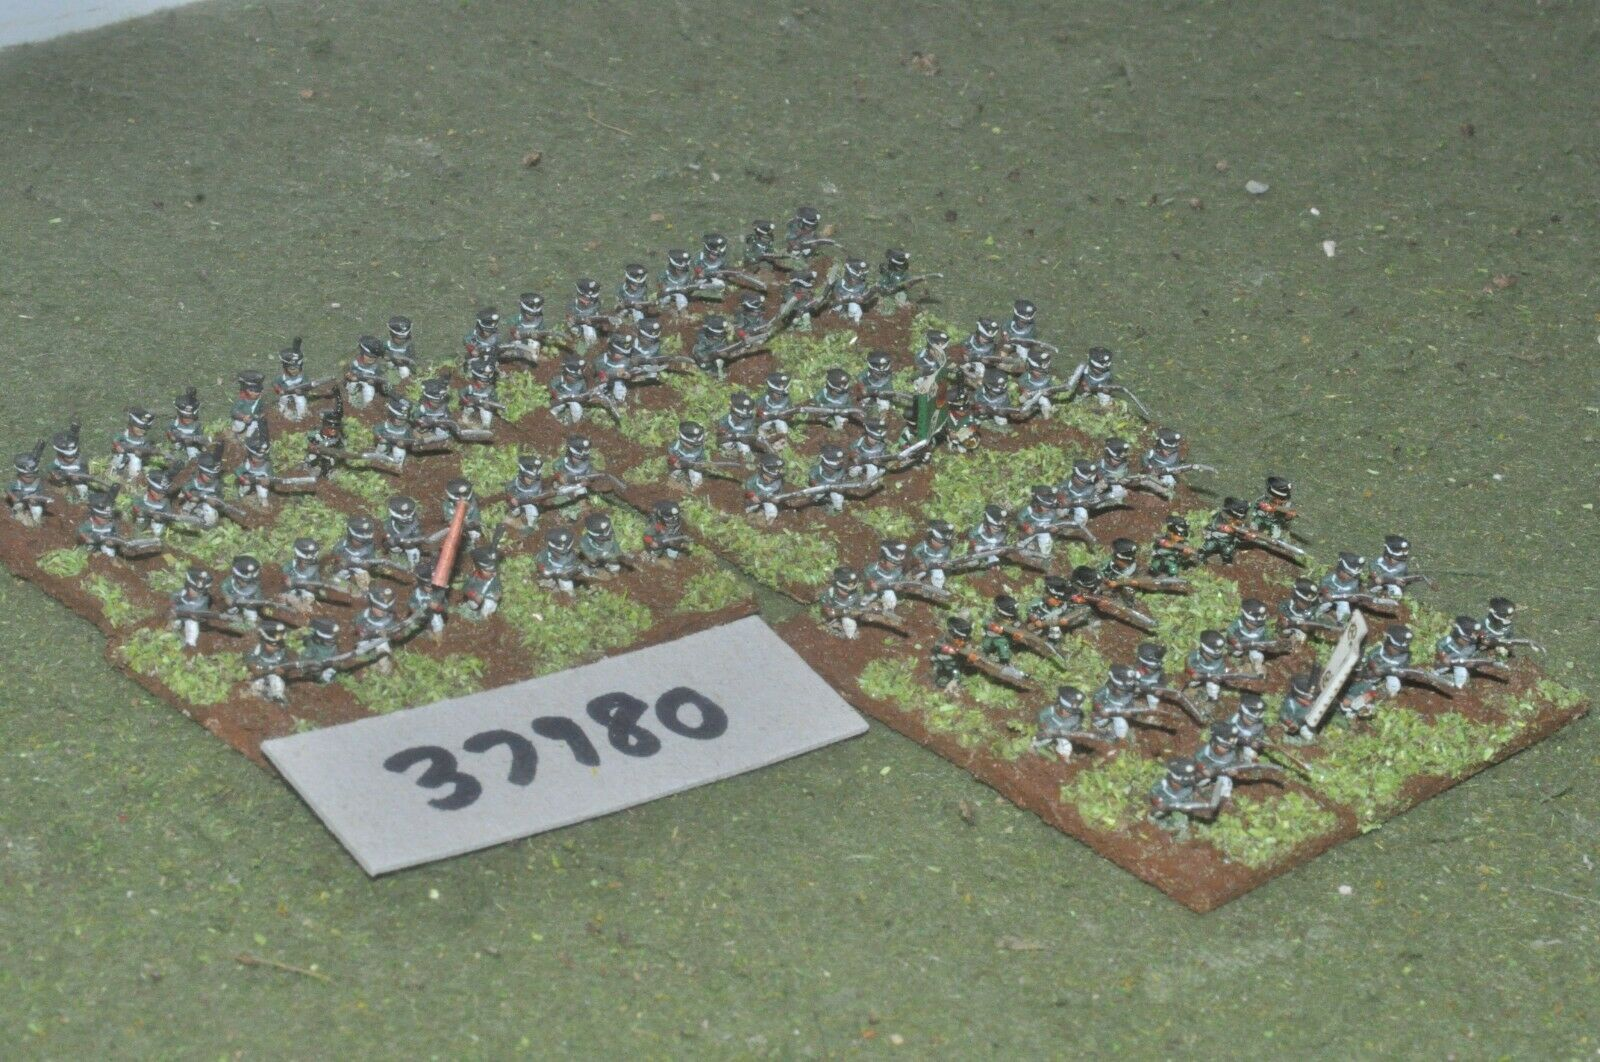 6mm napoleónicas ruso-Line (Adler) 96 figuras-INF (37980)